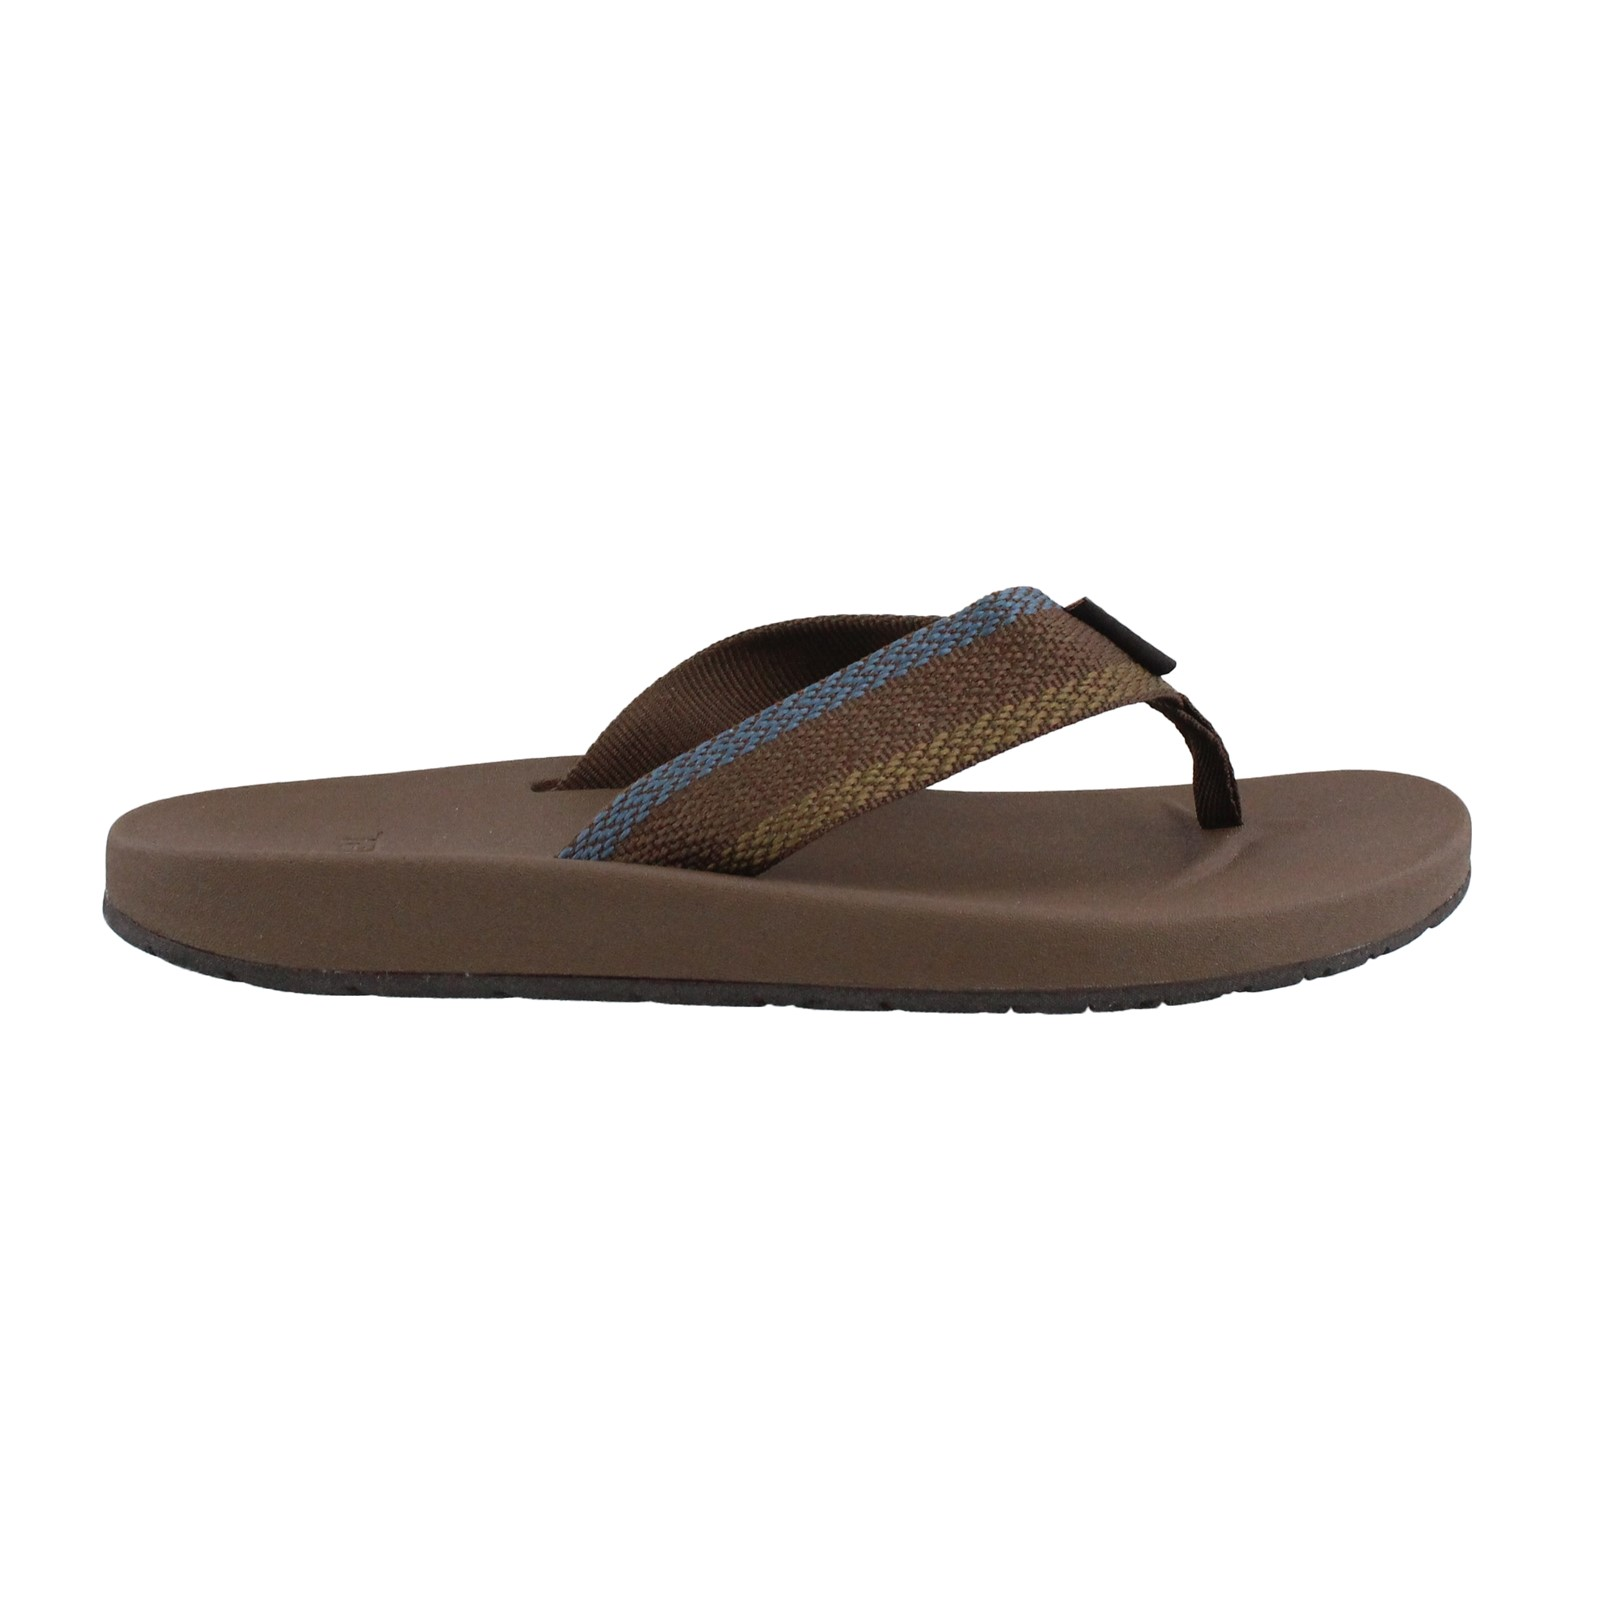 Men's Teva, Azure Flip Thong Sandals